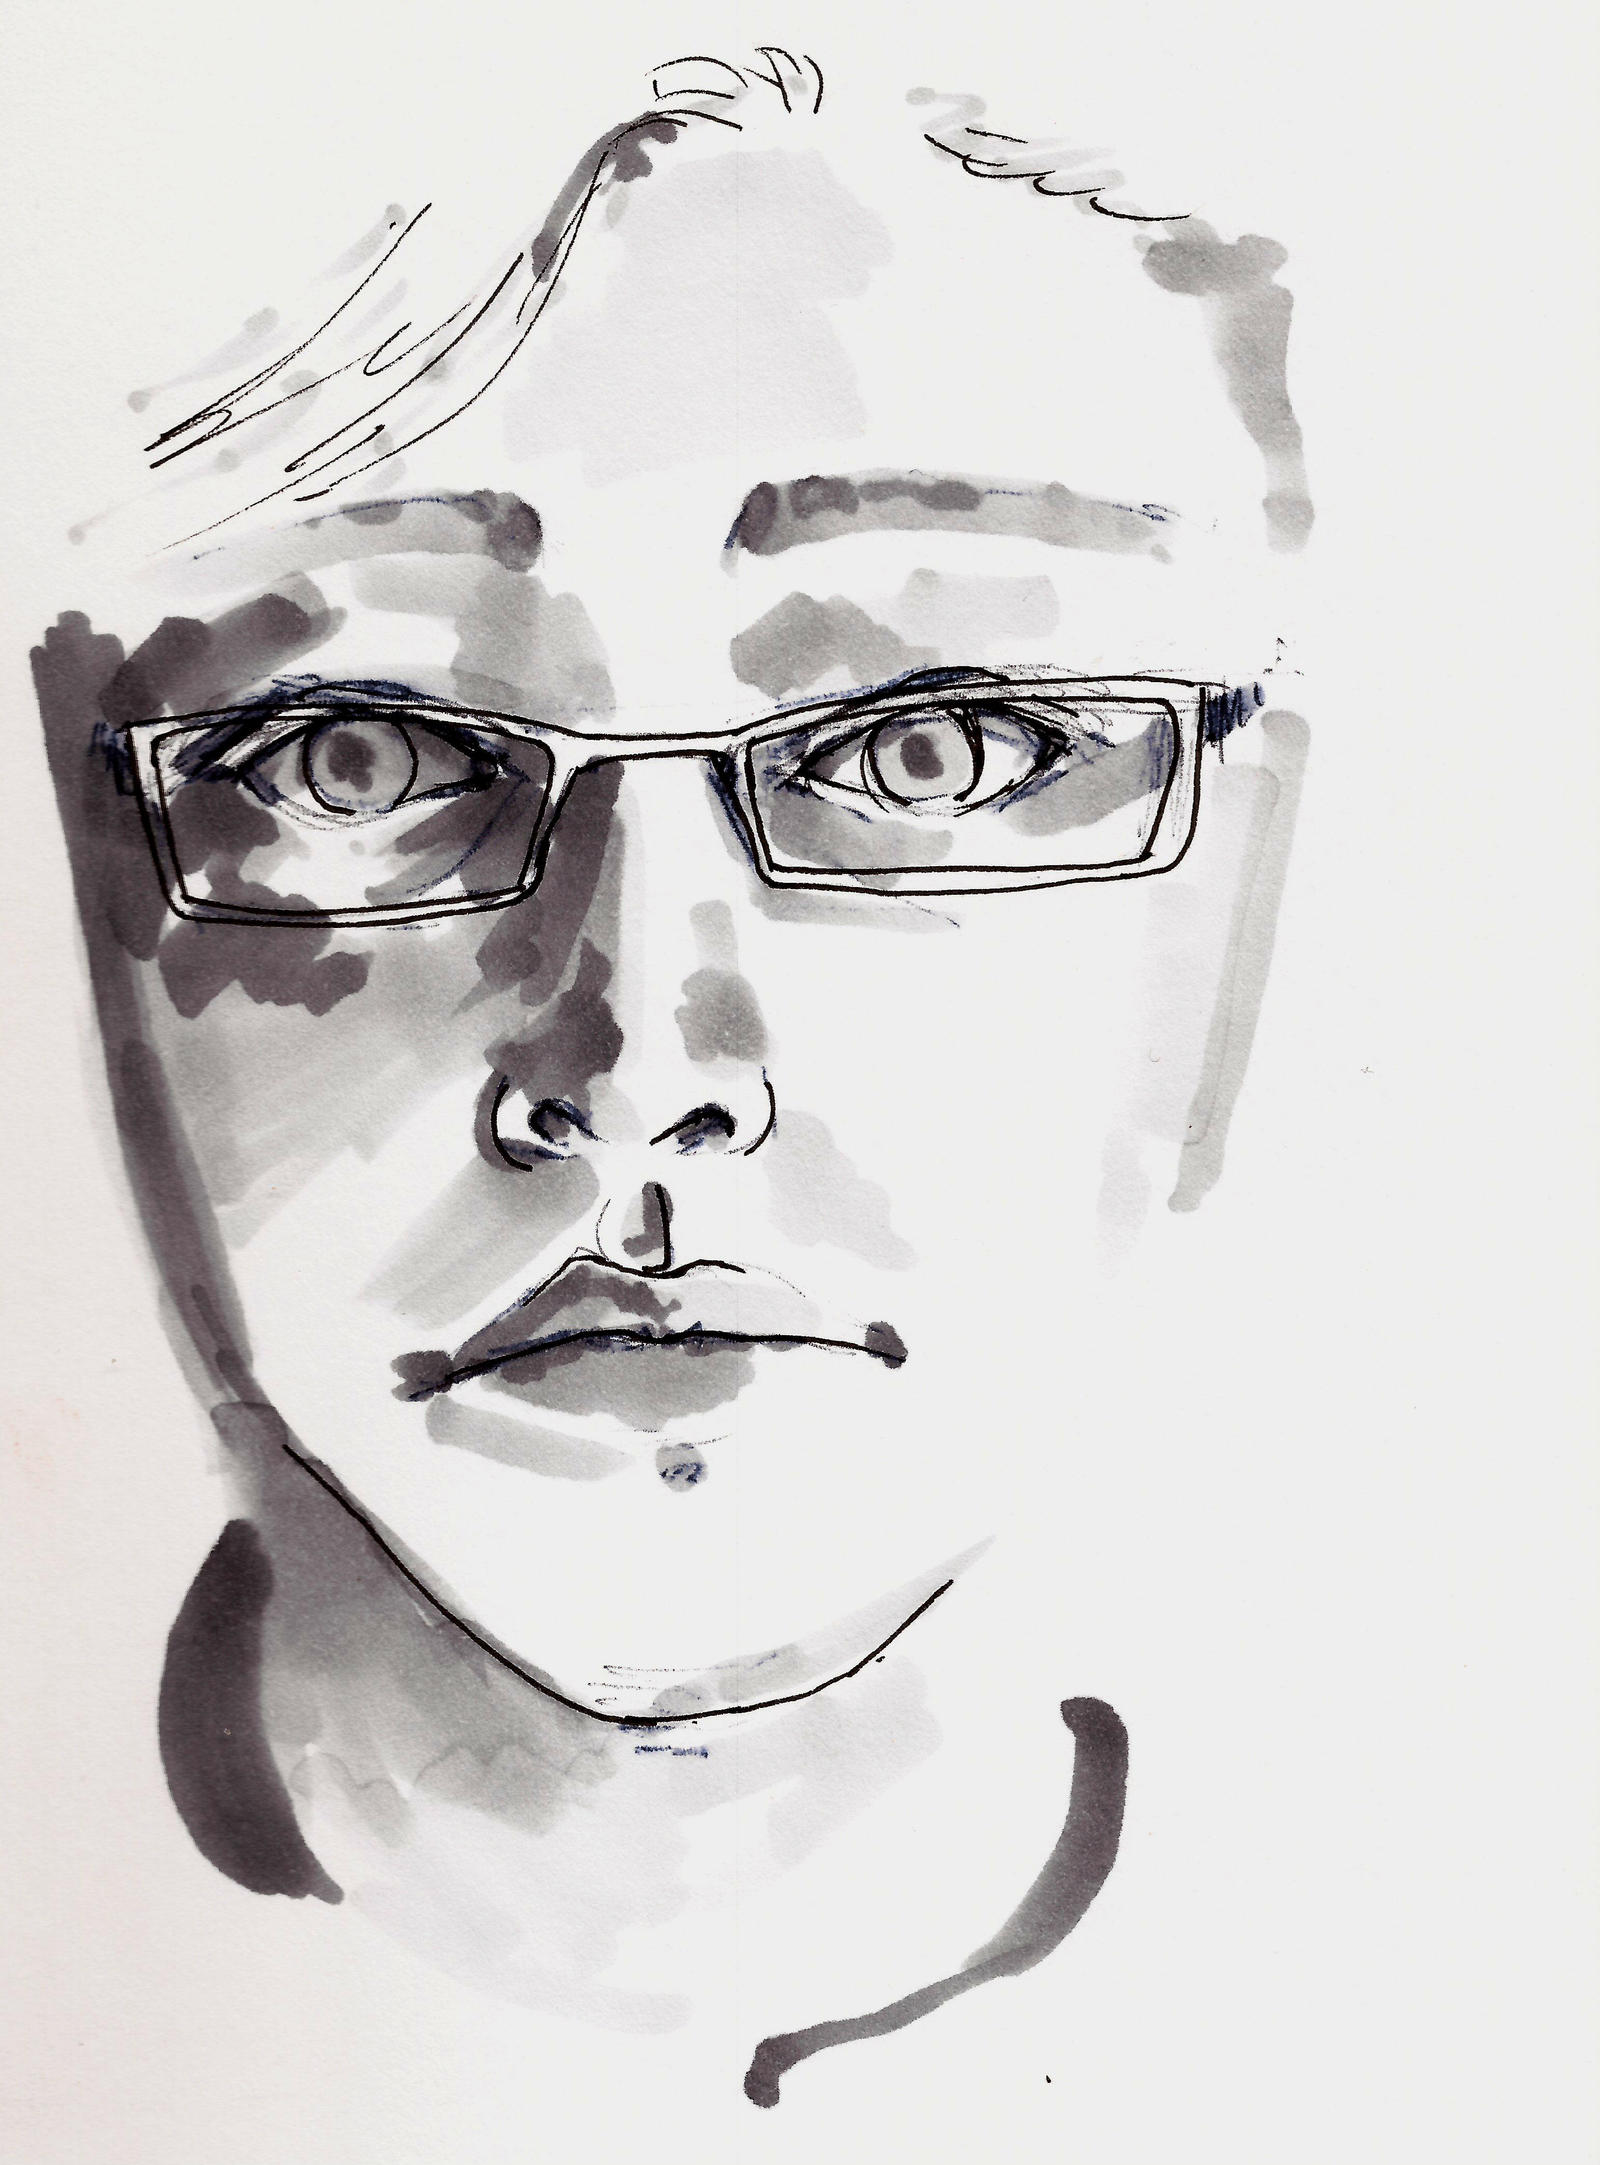 Self Portrait in Marker by IvurNave